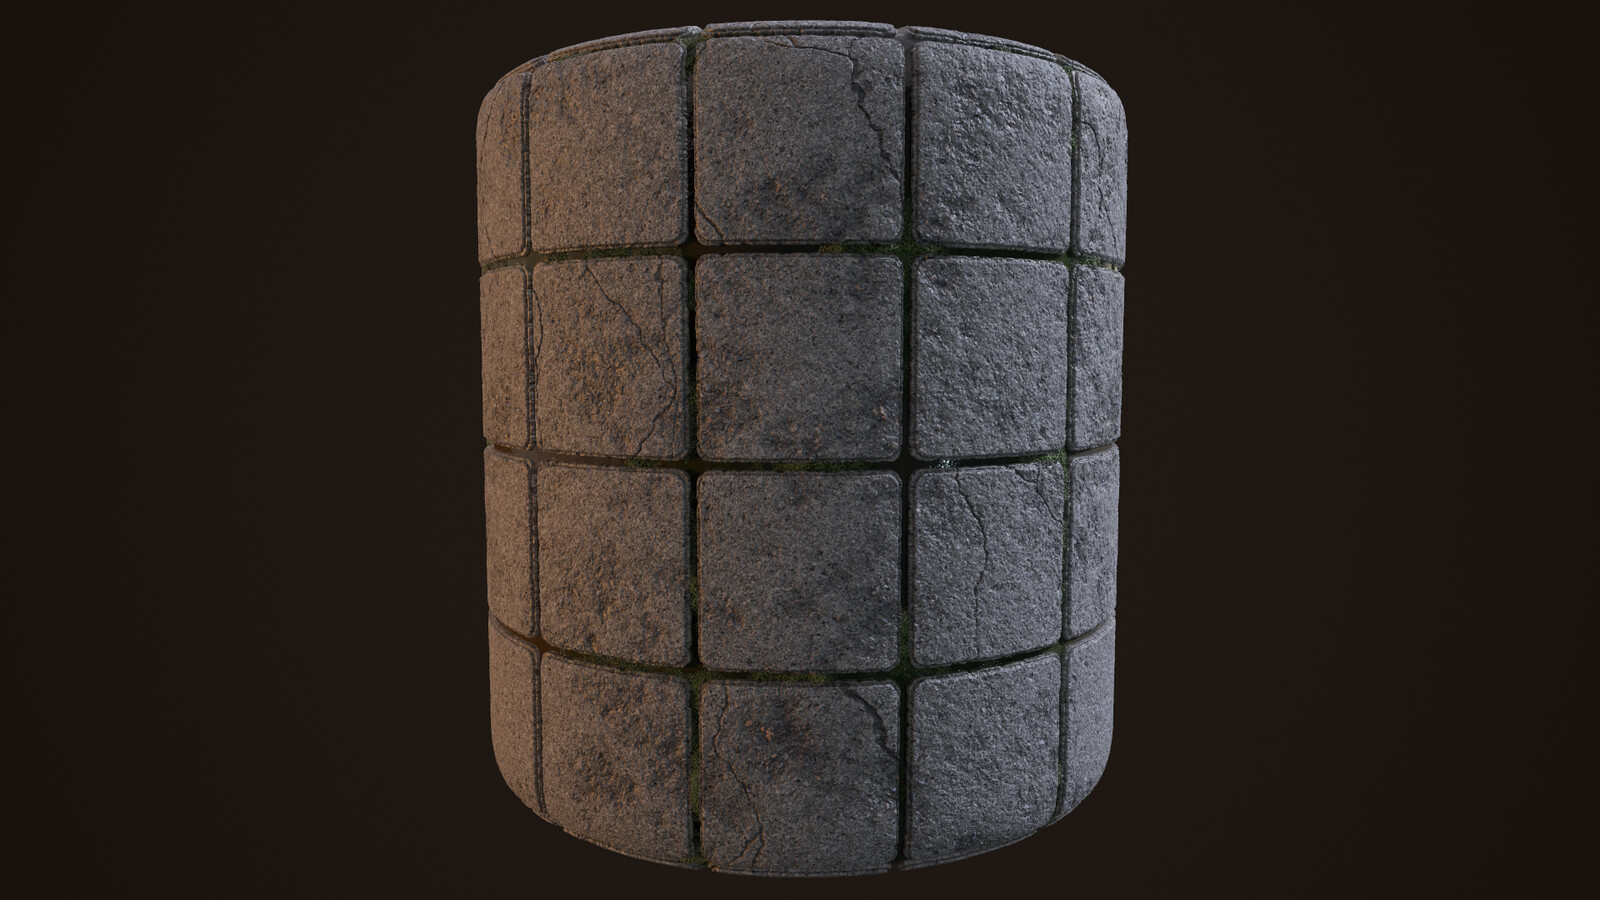 Cylindrical render